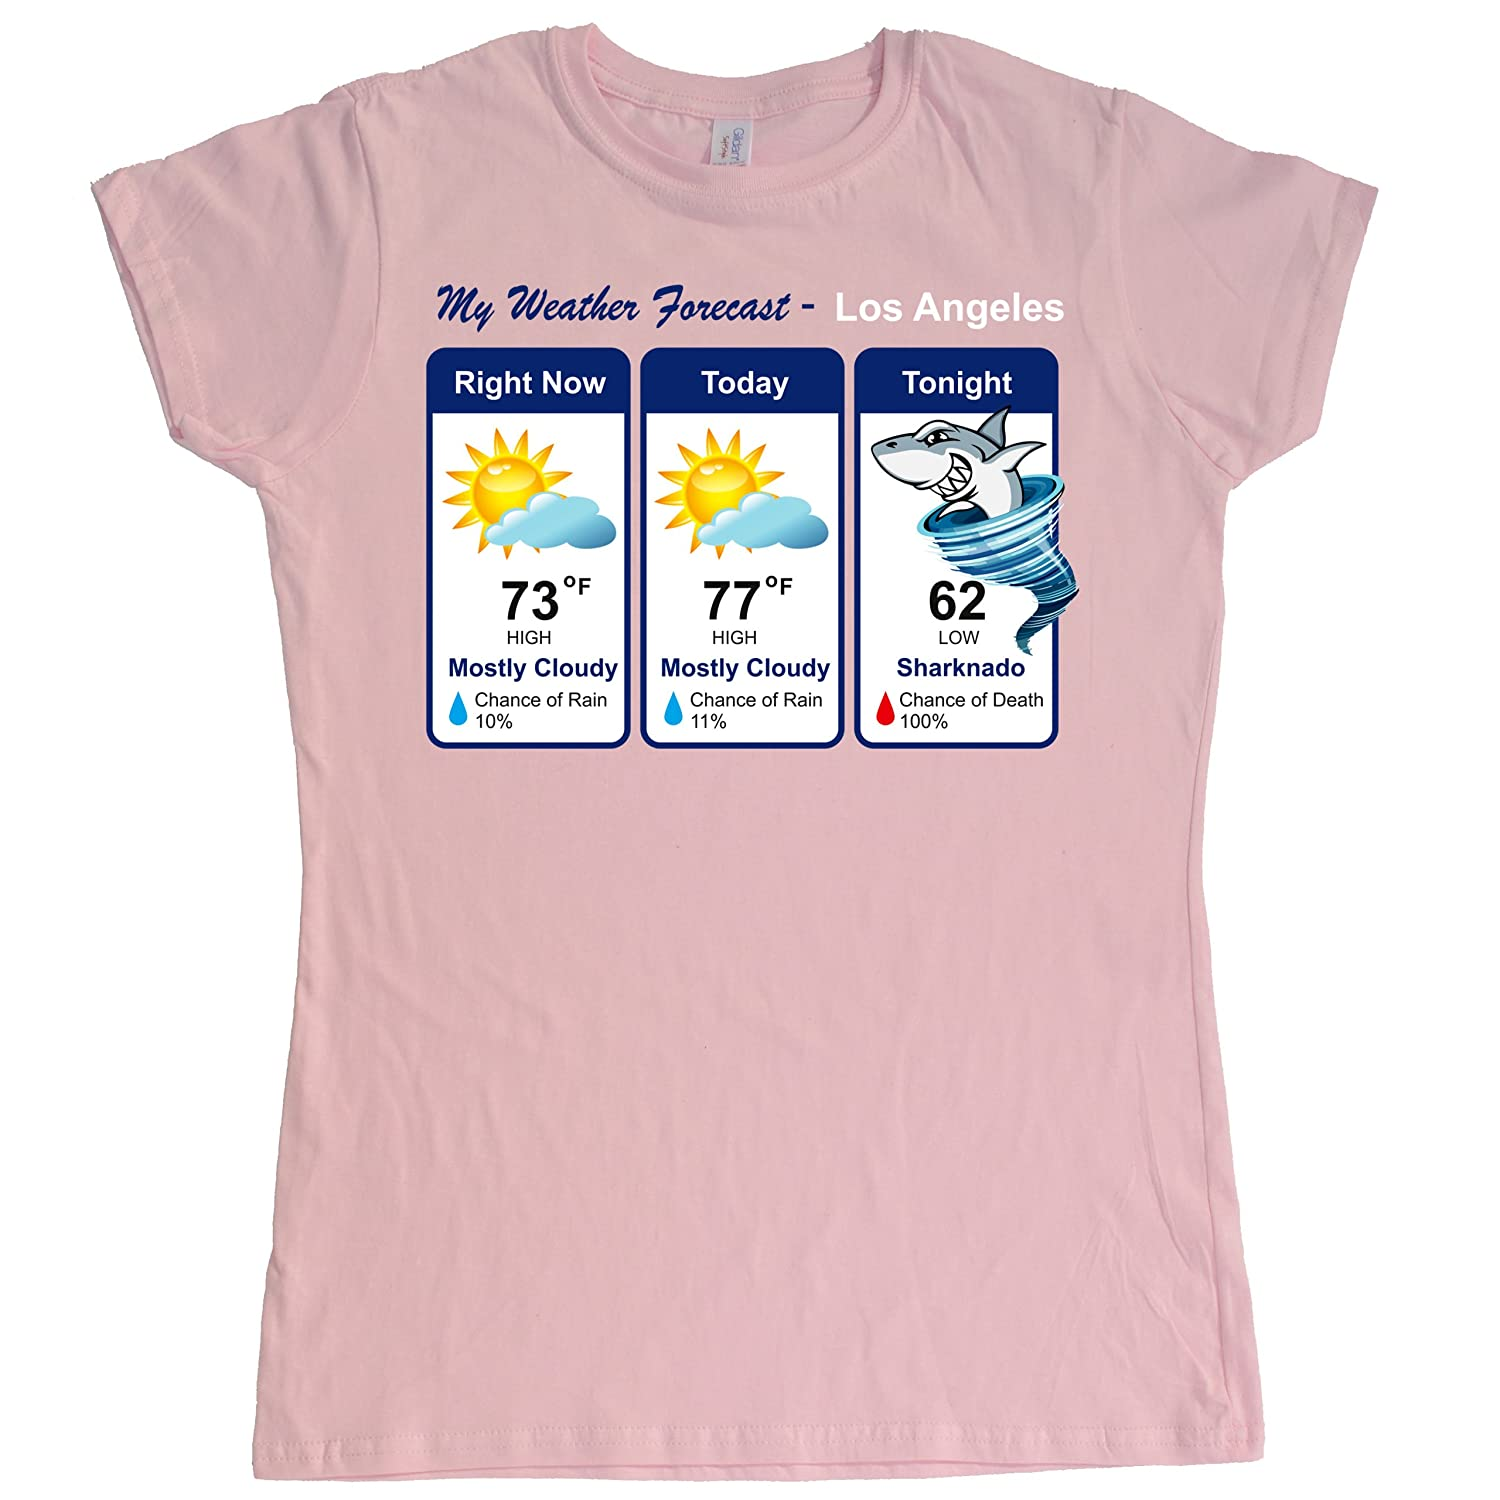 Stooble Womens's Sharknado Weather Forecast T-Shirt Stooble - 1ClickPrint